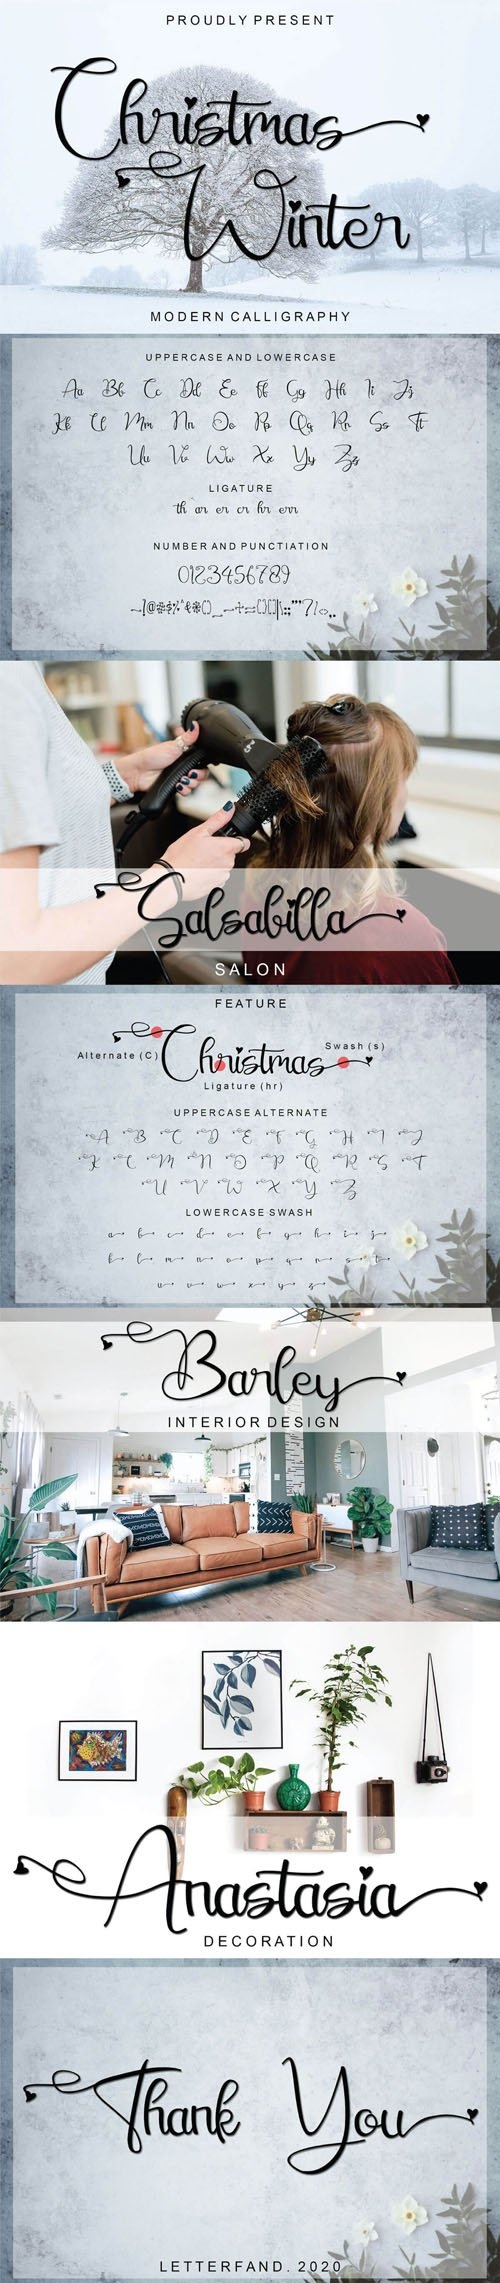 Christmas Winter - Modern Calligraphy Font